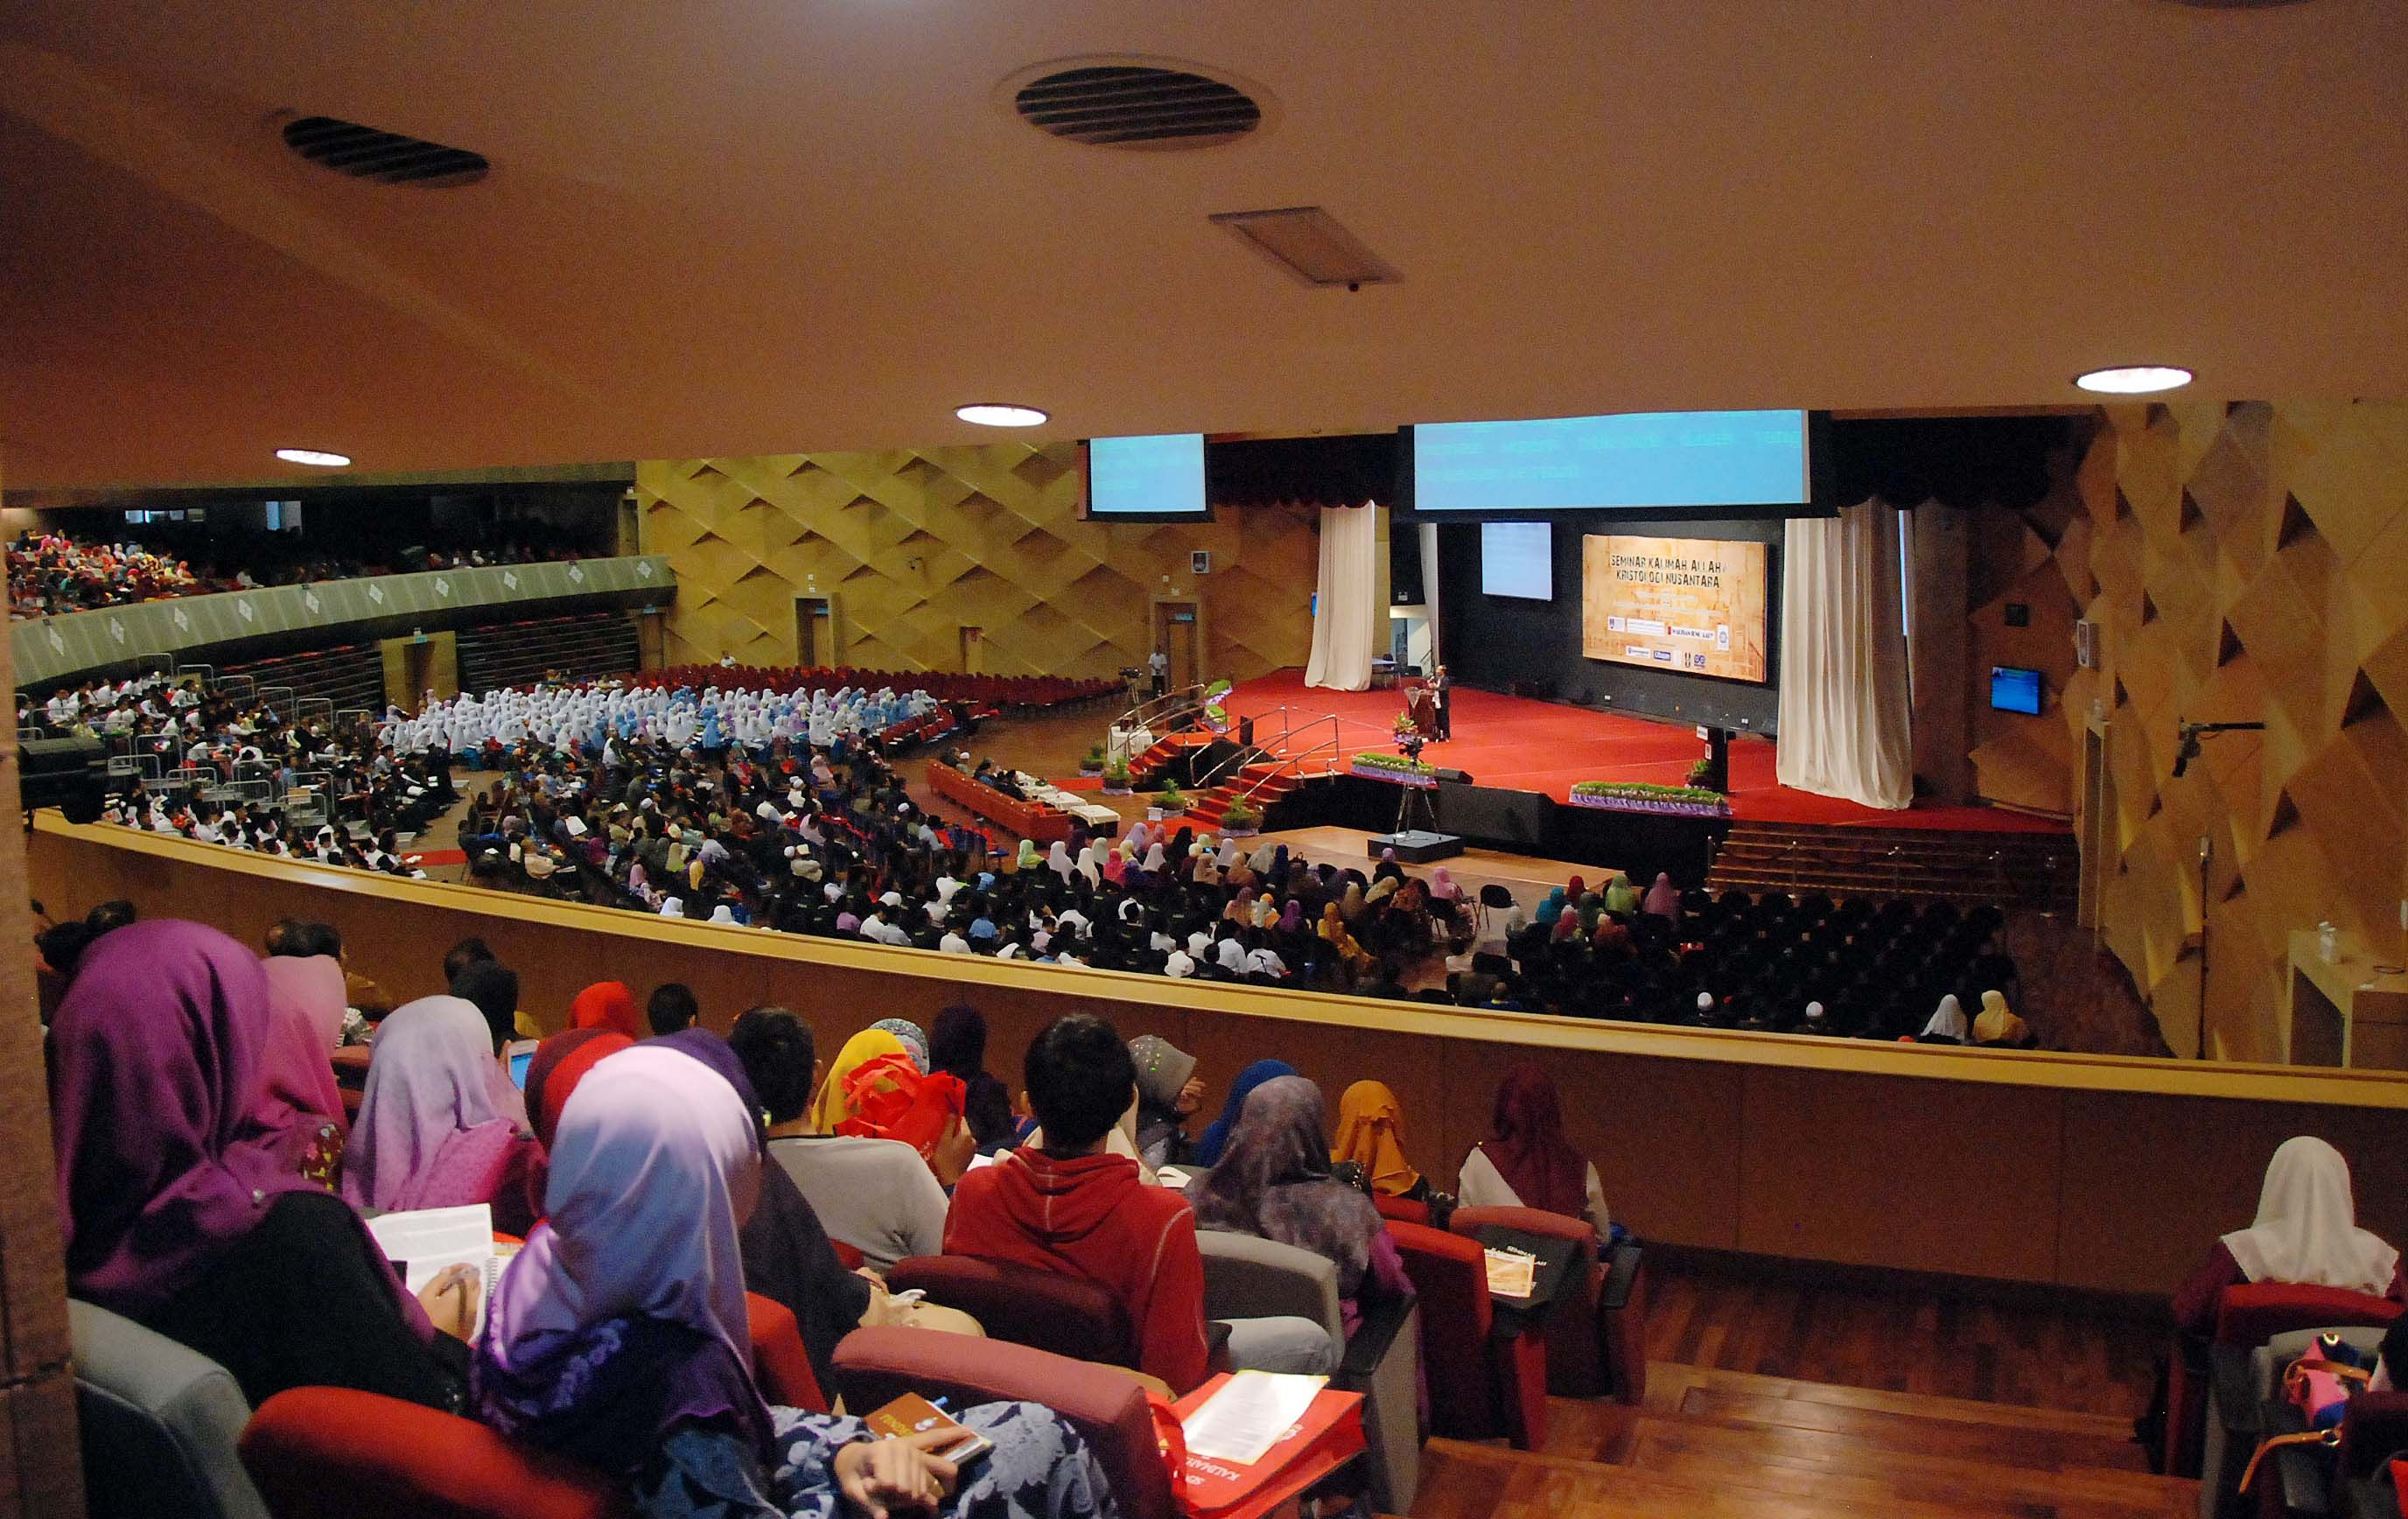 Higher Education Minister Datuk Seri Idris Jusoh referred to Article 153 in the Federal Constitution and asserted that UiTM is 'serving the constitutional needs of the country'. ― Picture by Yusof Mat Isa